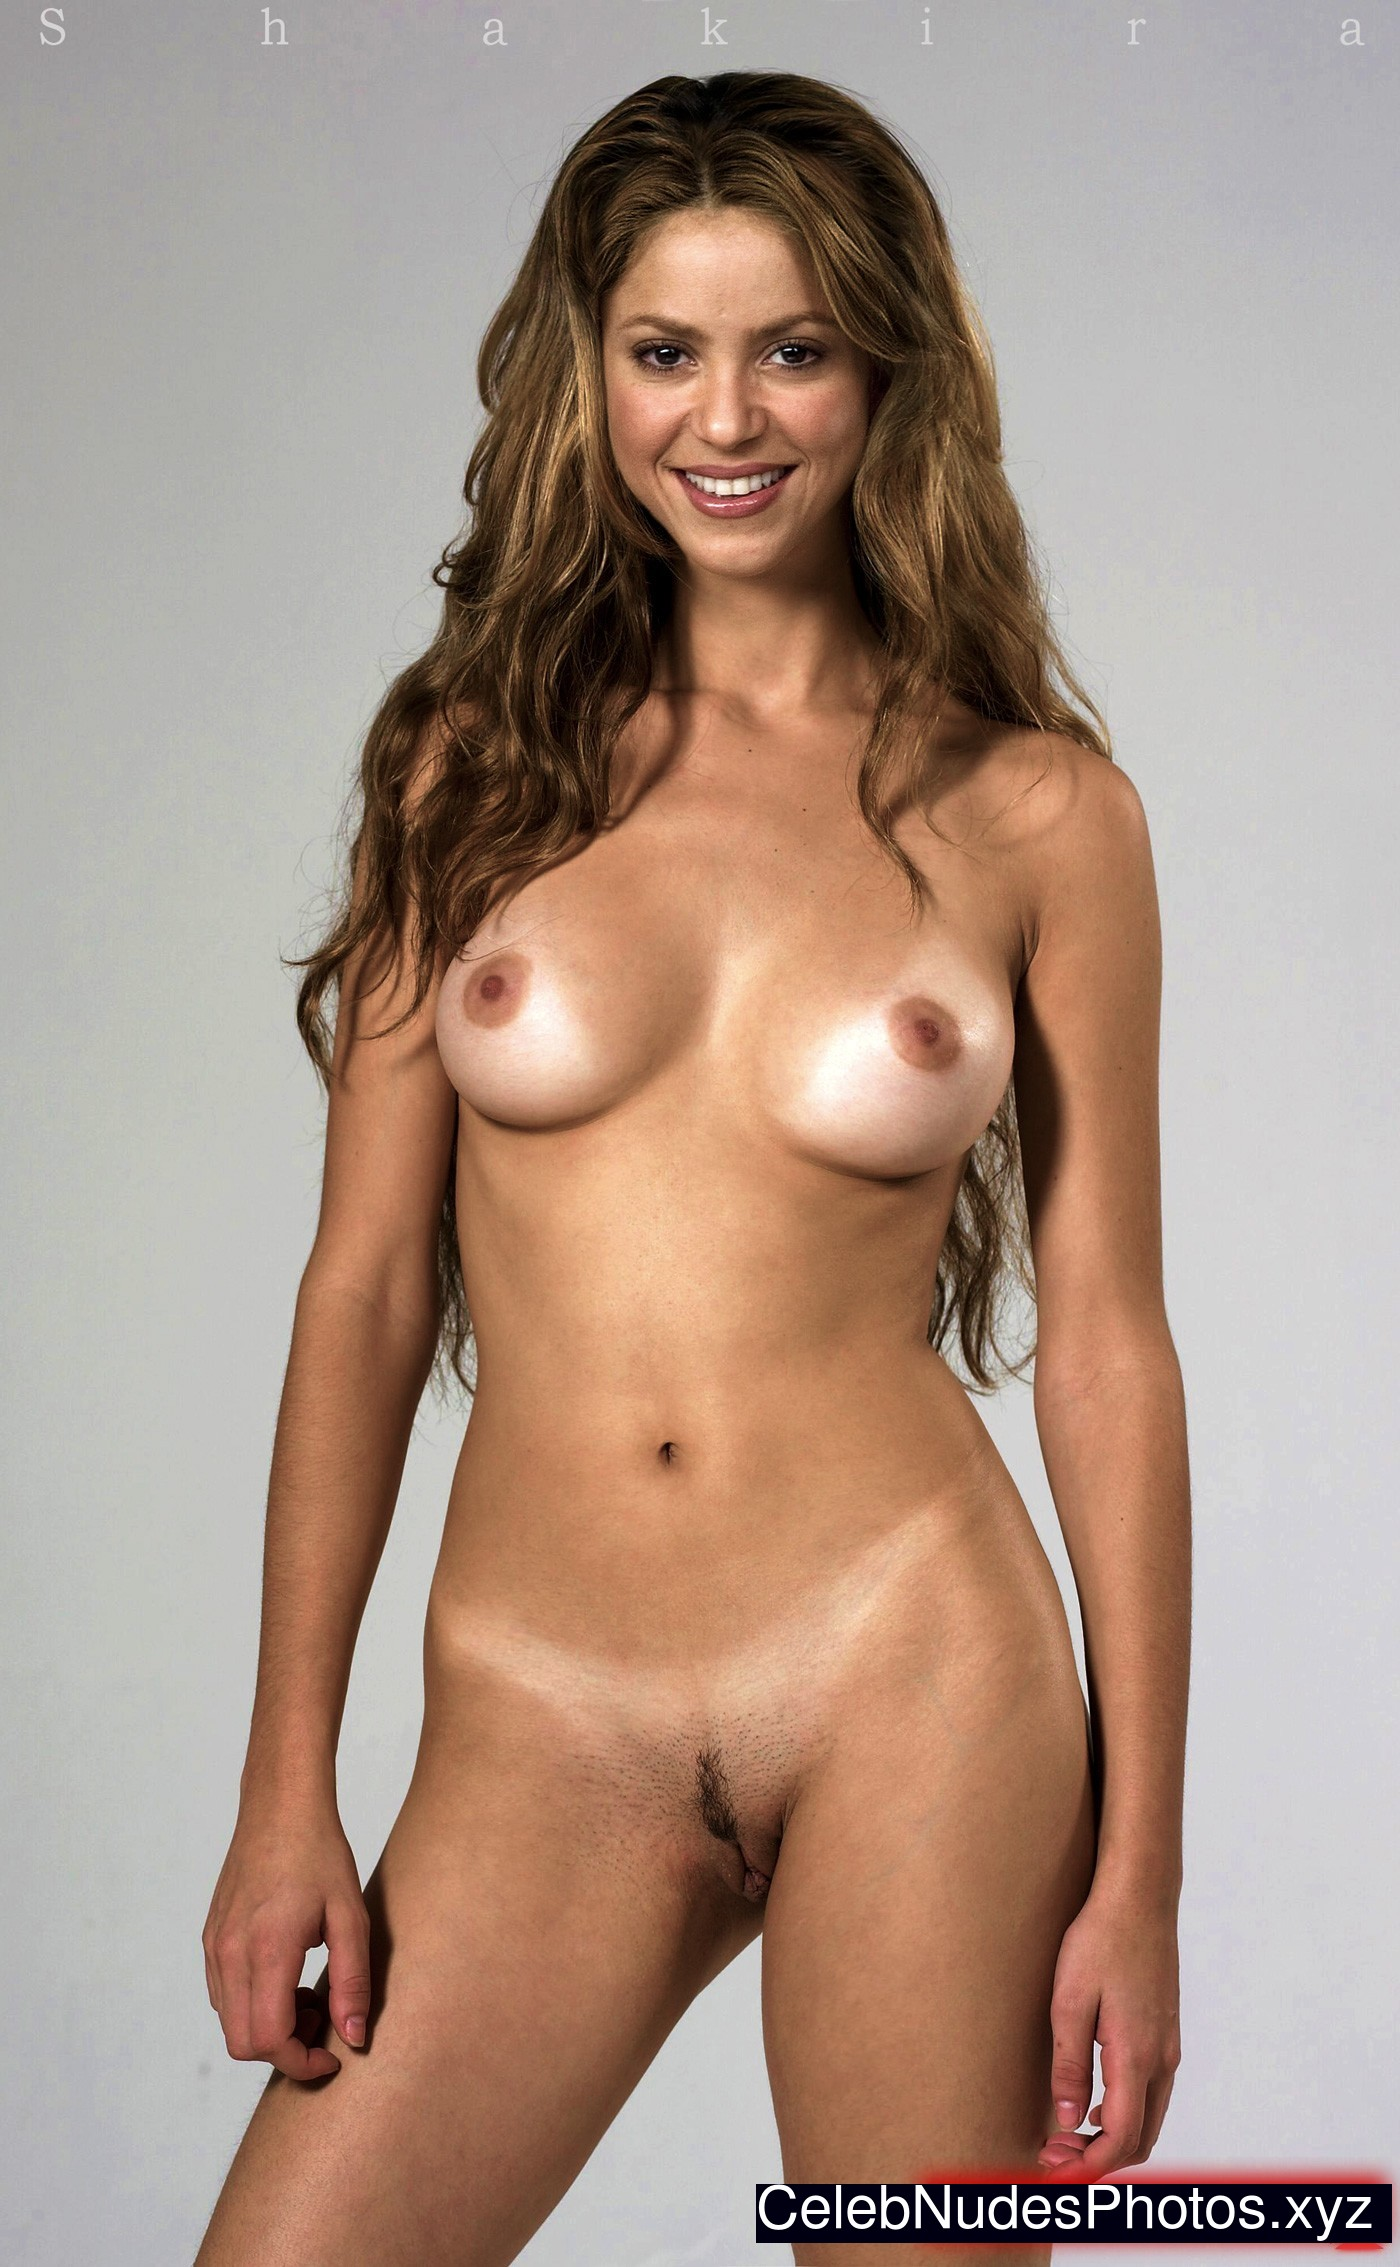 Young generation nudist 3